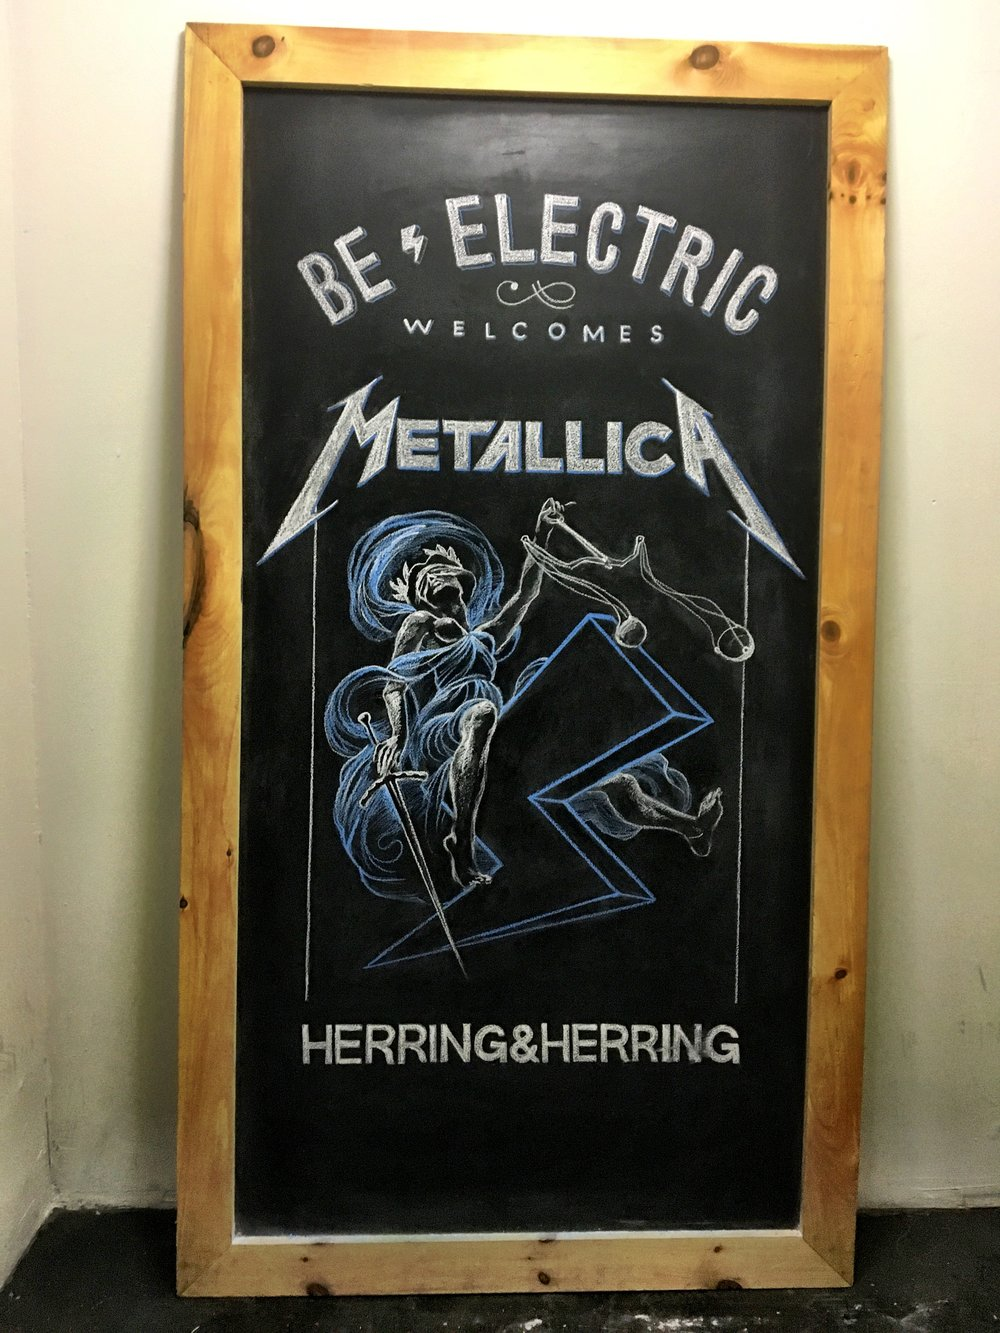 herring-herring-metallica-be-electric-studios-film-studio-nyc-2.jpg